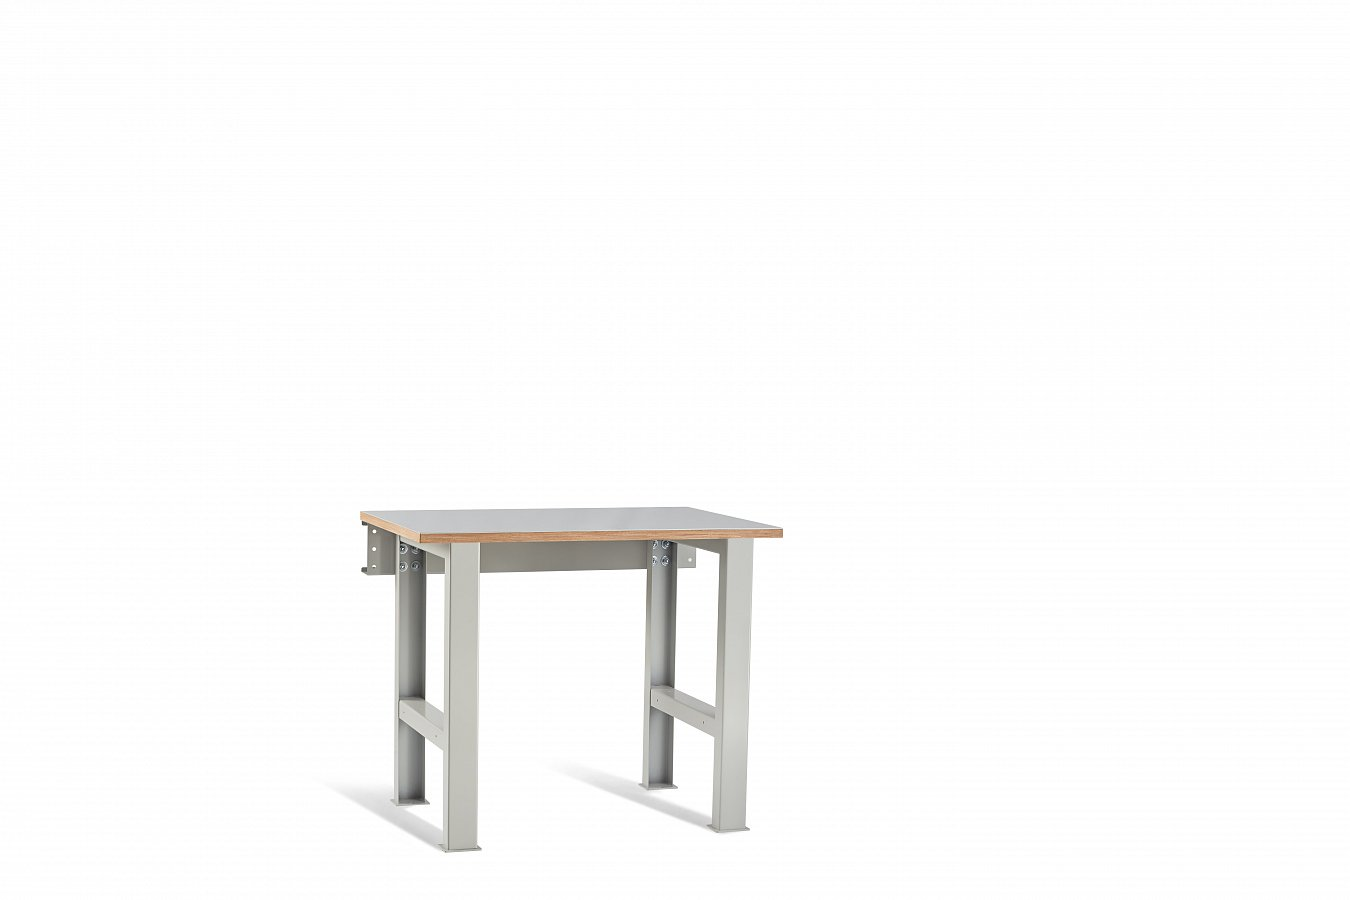 DiKom VL-100-01 Workbench (5)